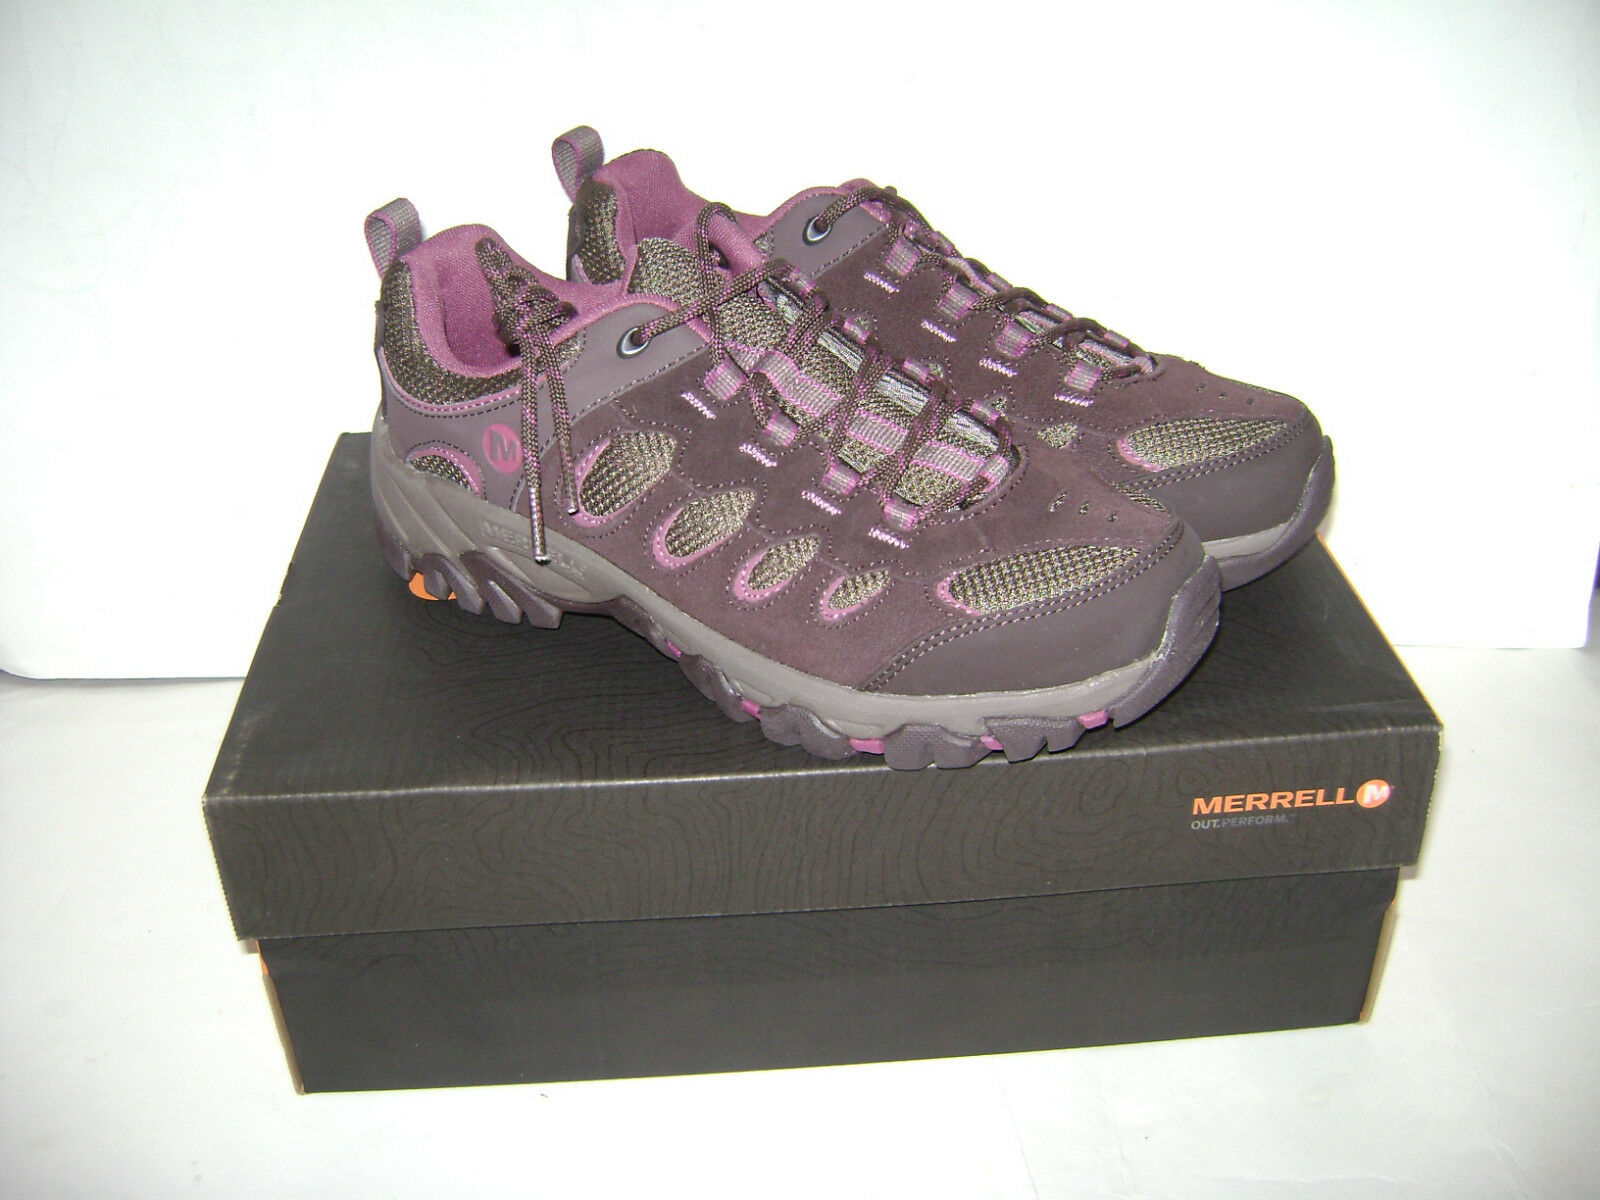 NIB MERRELL RIDGEPASS WOMEN HIKING TRAIL SHOES Size 9 M ESPRESSO blueSHING